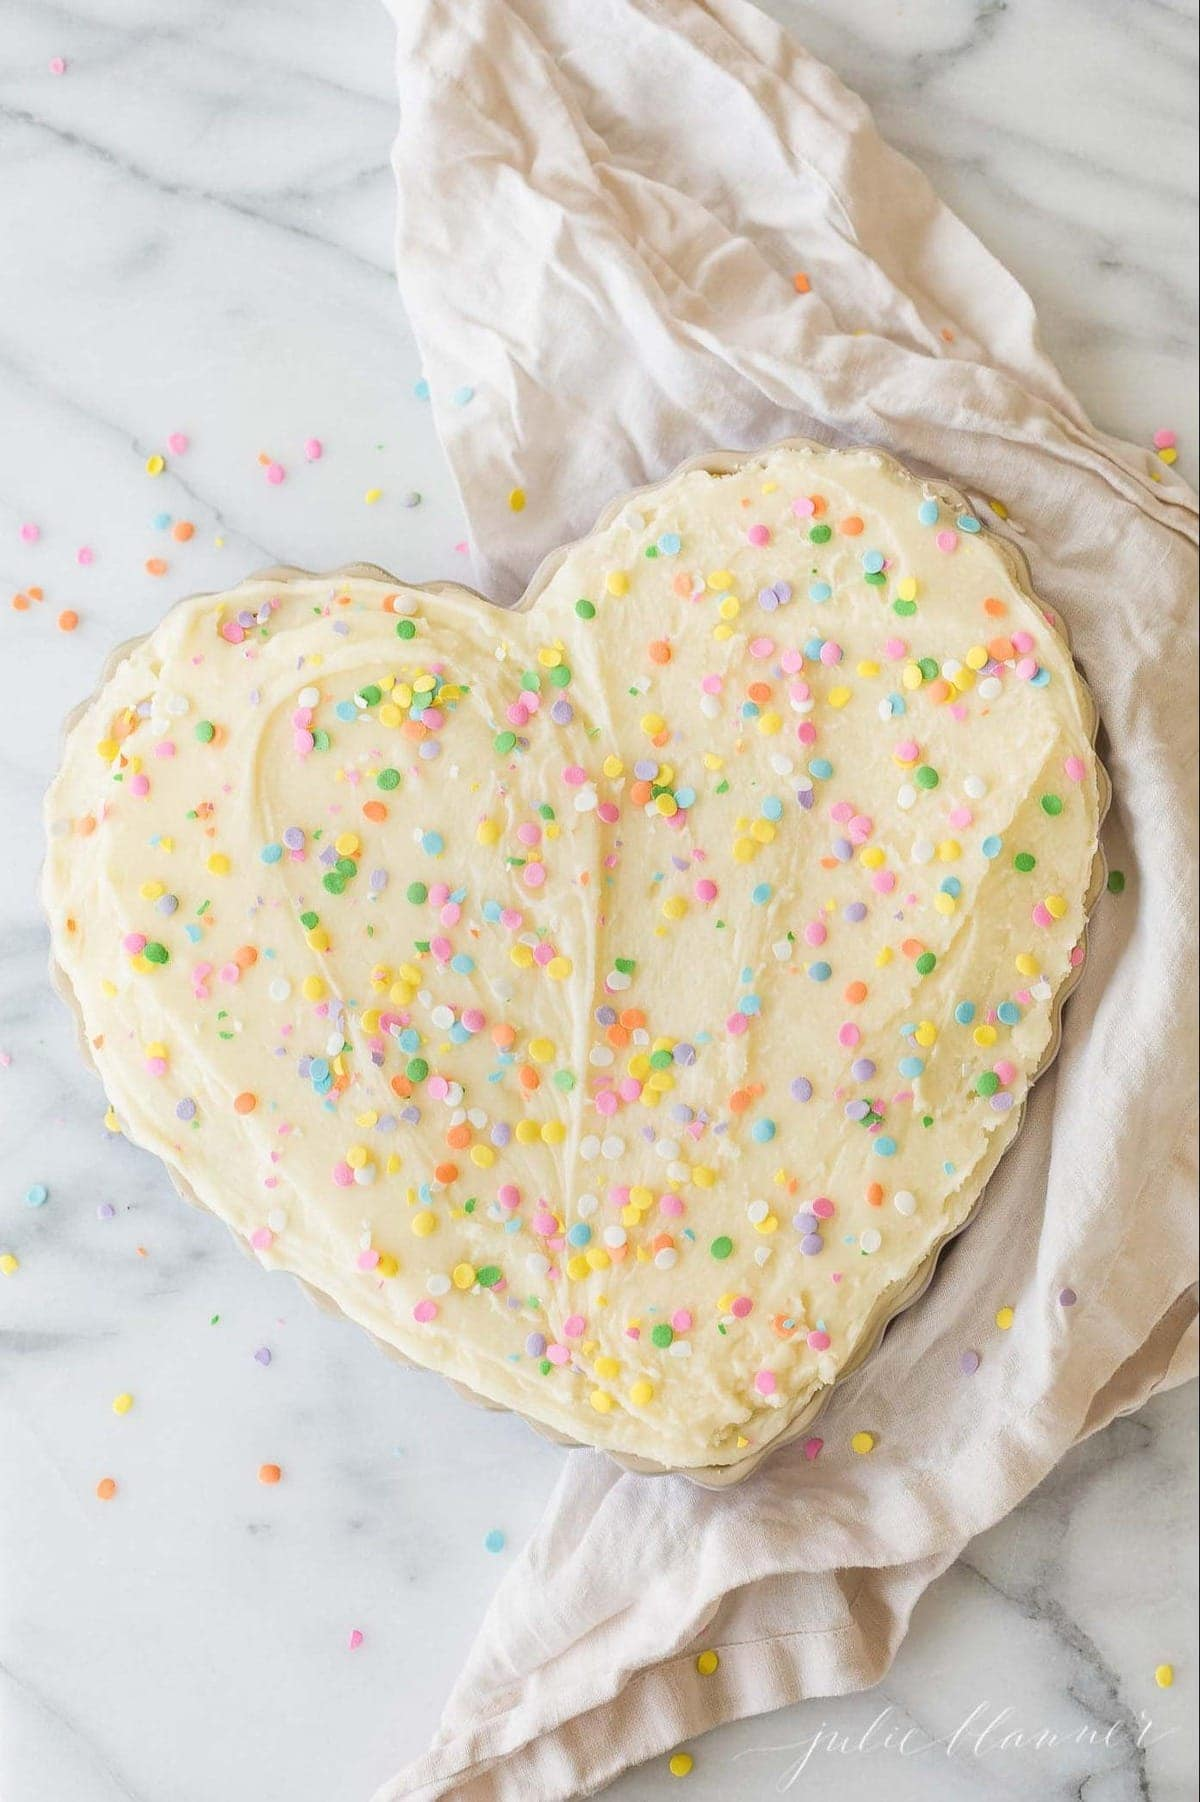 A decorated heart shaped cake on a marble work surface